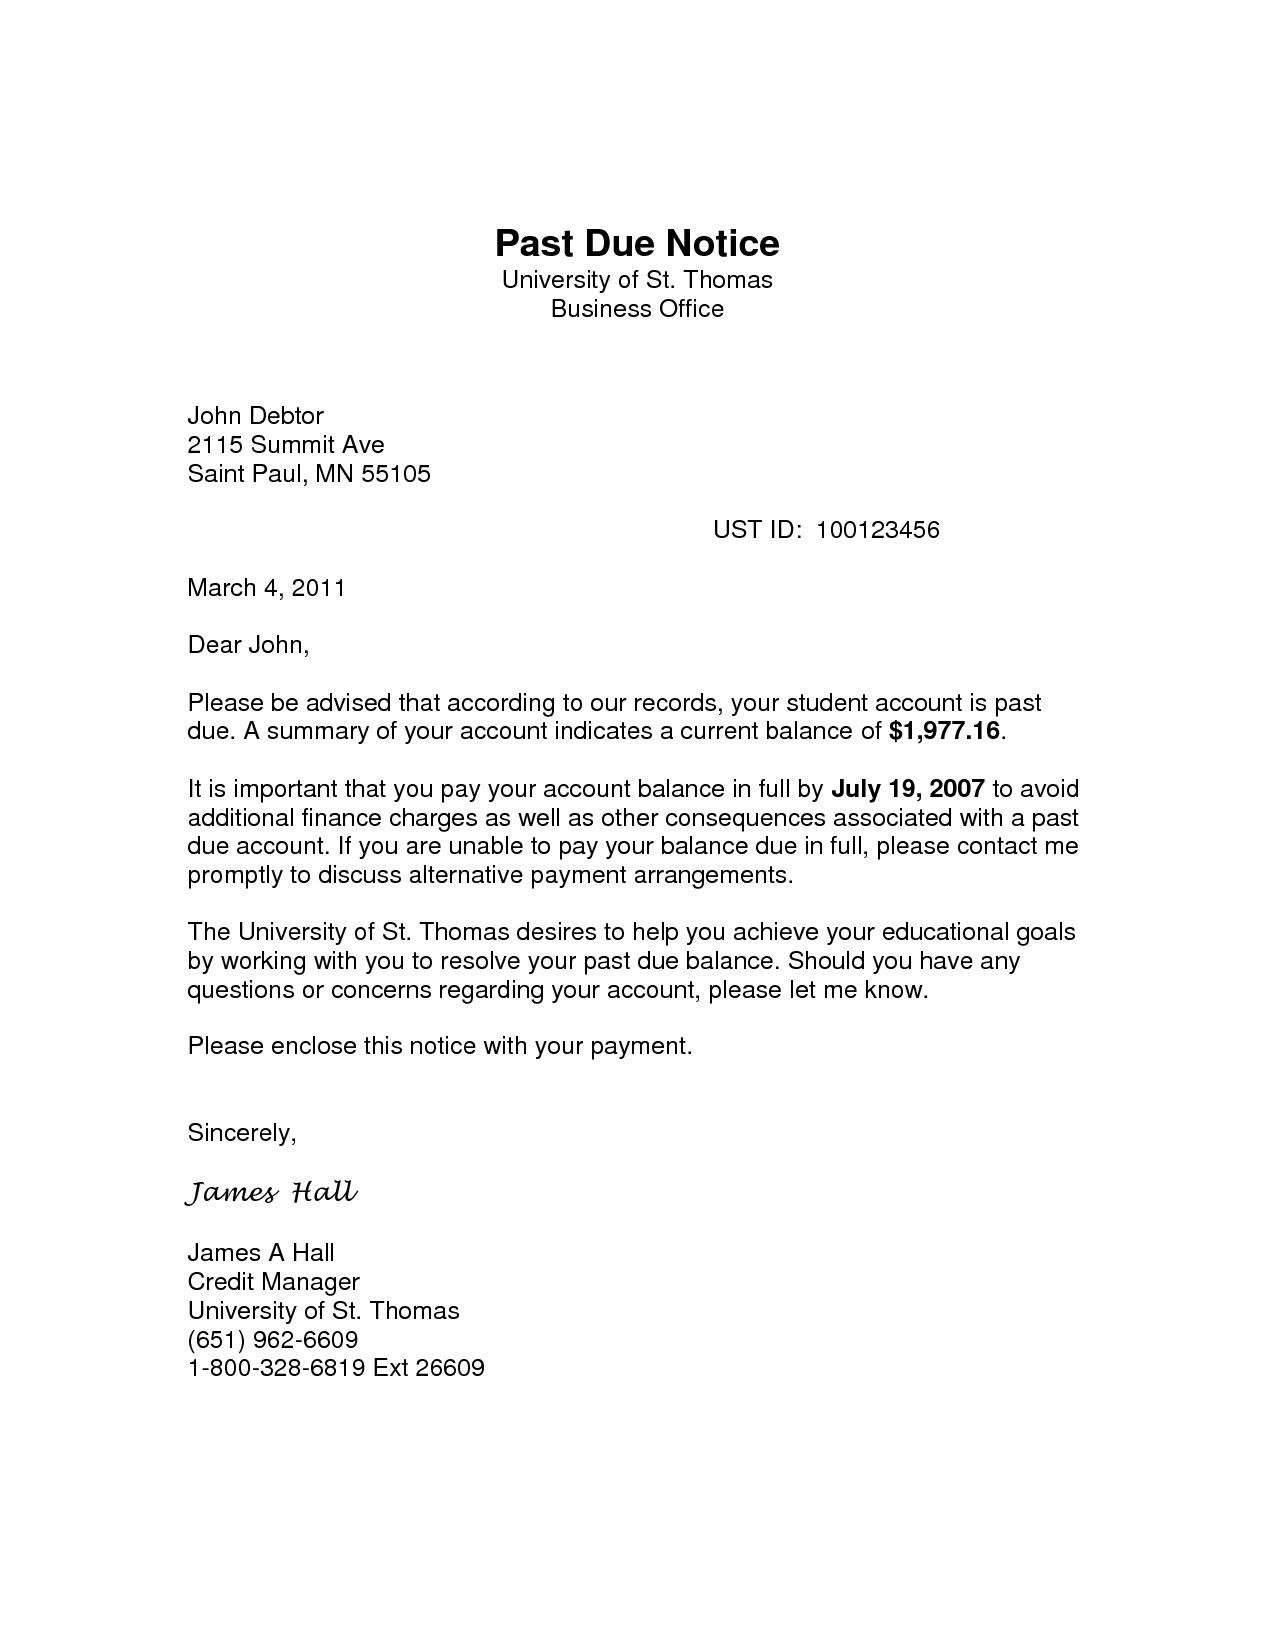 Past Due Rent Letter Template Examples  Letter Template Collection Within Past Due Letter Template